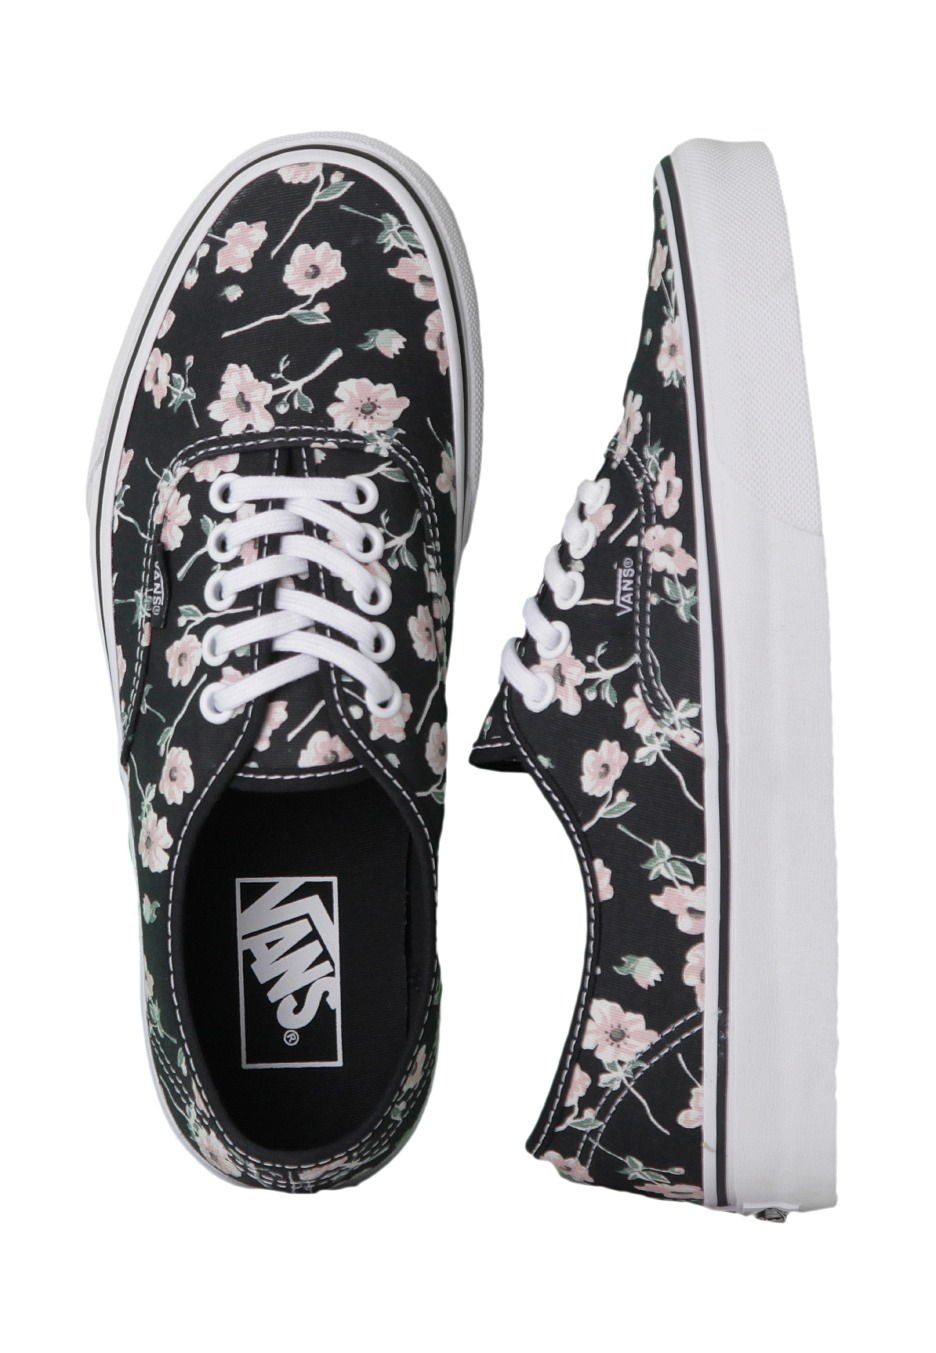 4f5f28512fcc2b Vans - Authentic Vintage Floral Blue Graphite - Girl Shoes - Impericon.com  UK